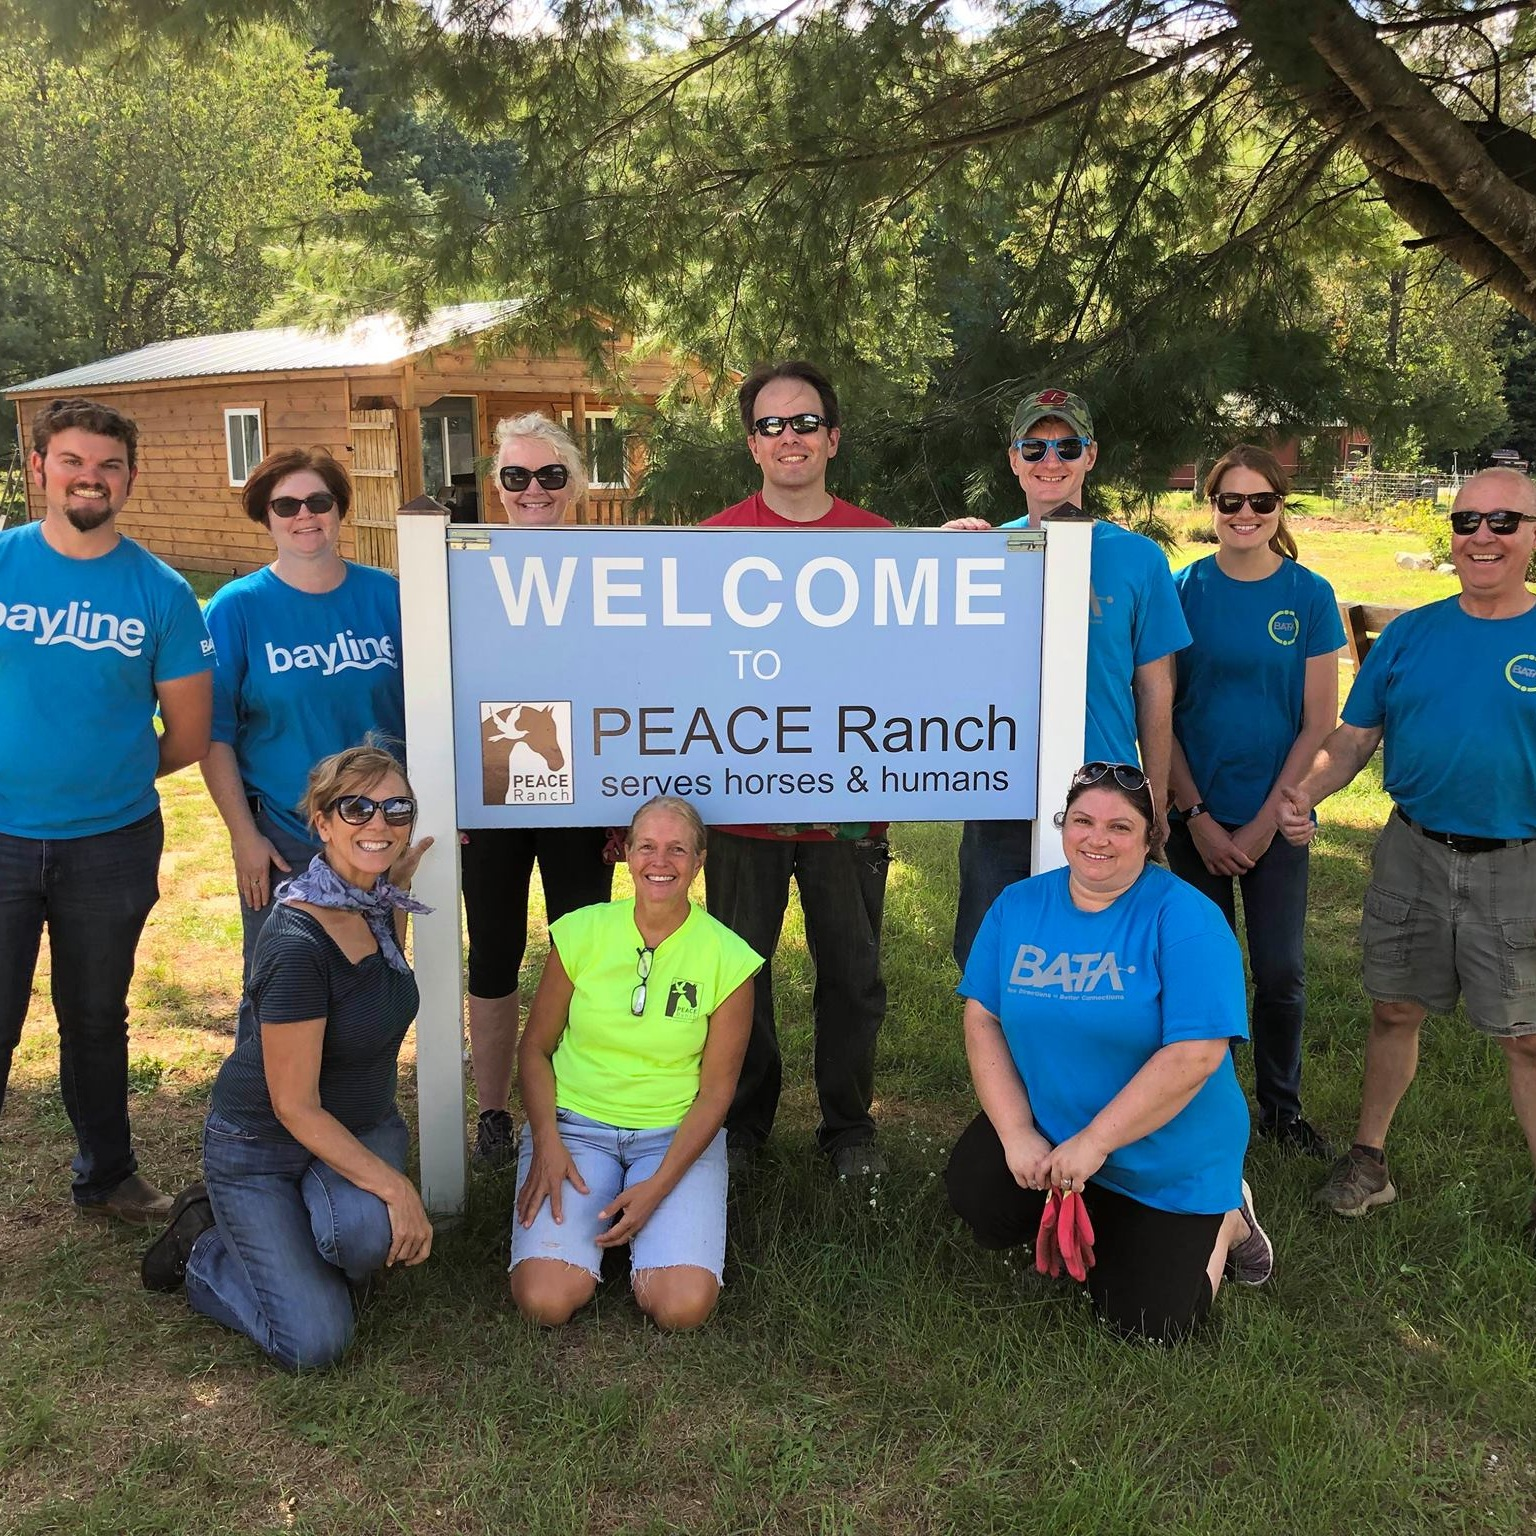 Professional workshop/retreat at Peace Ranch in Traverse City, Michigan